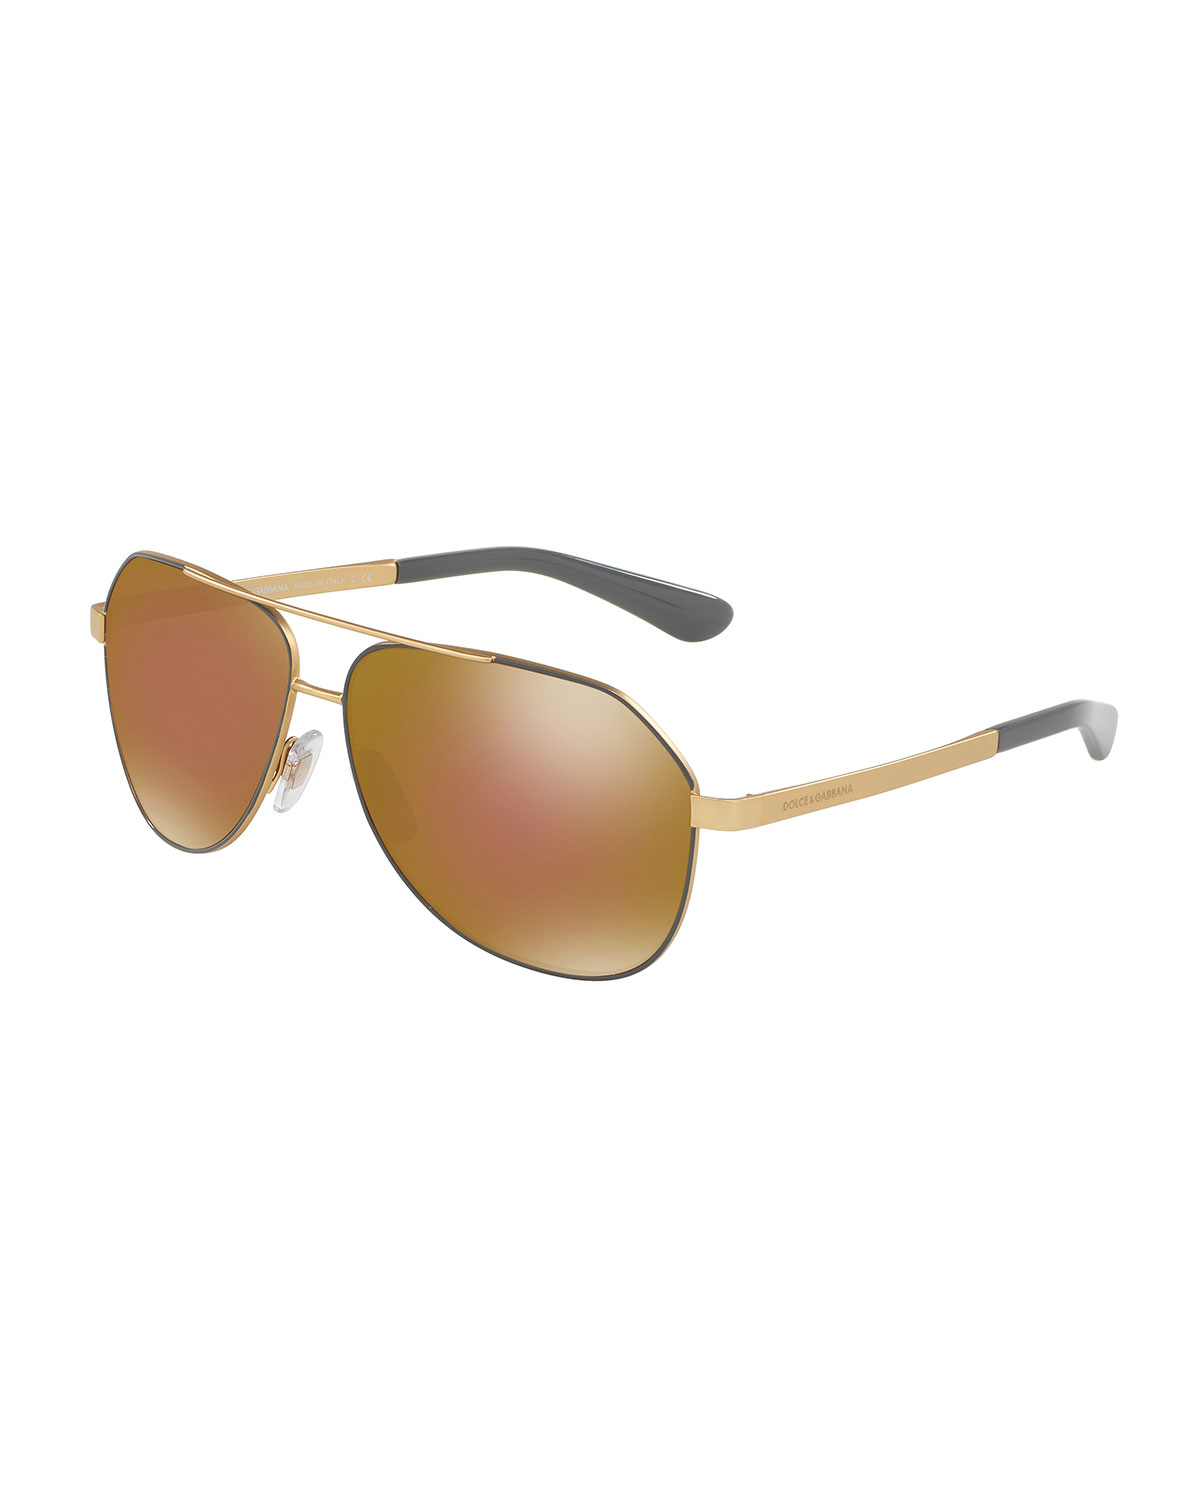 Iridescent Metal Aviator Sunglasses, Gray